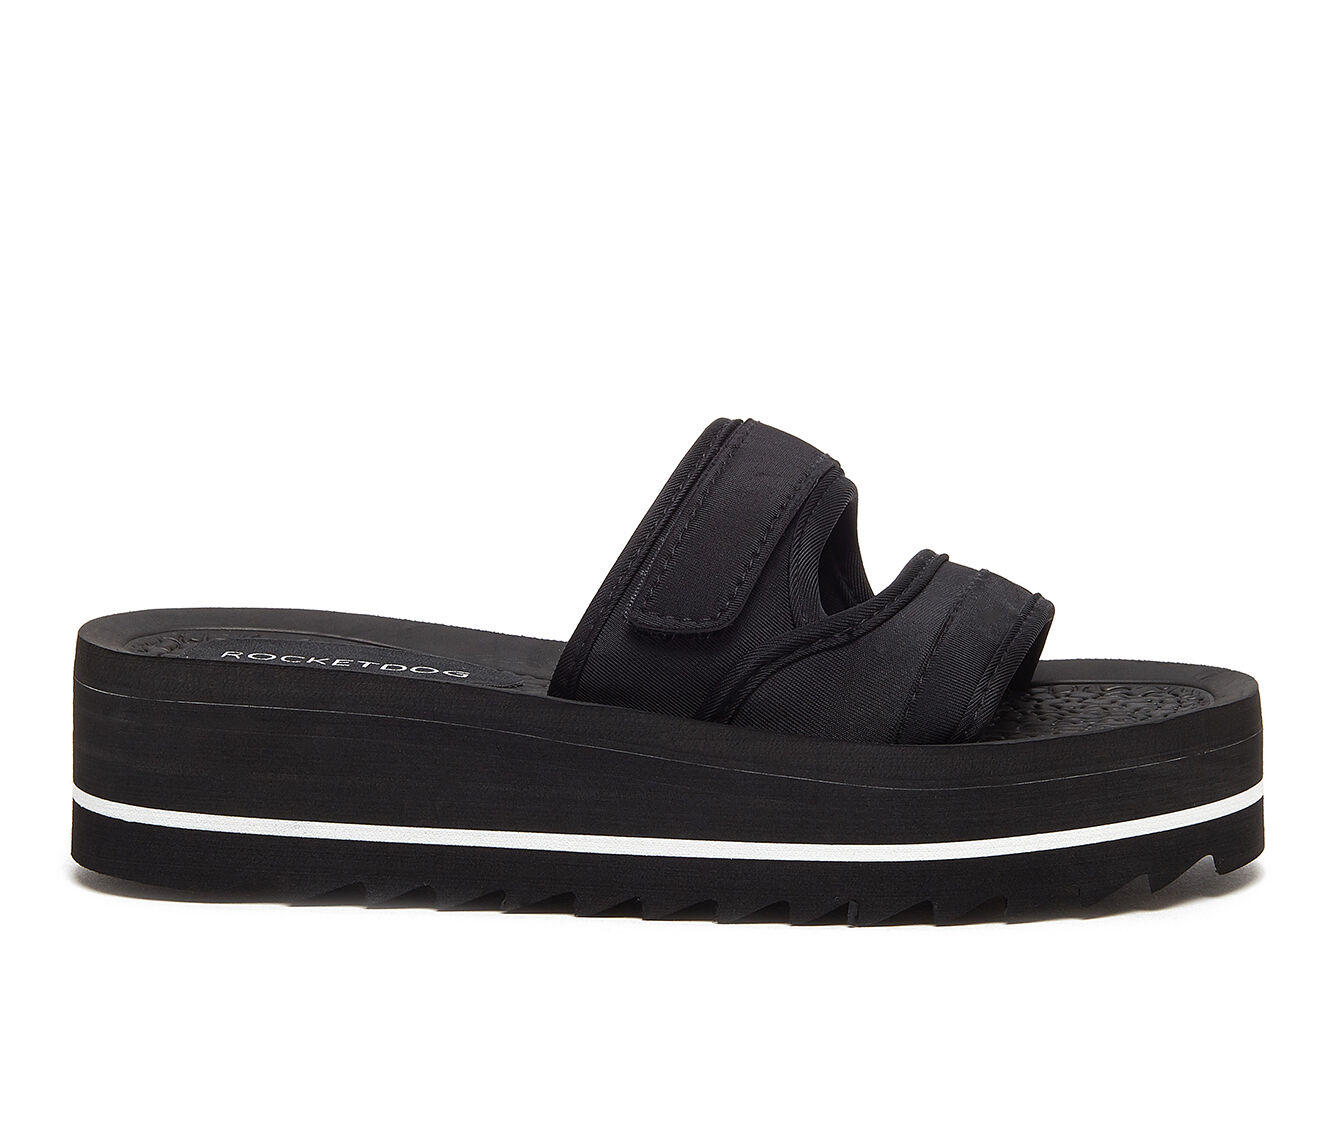 Women's Rocket Dog Manto Flatform Sandals Black/White